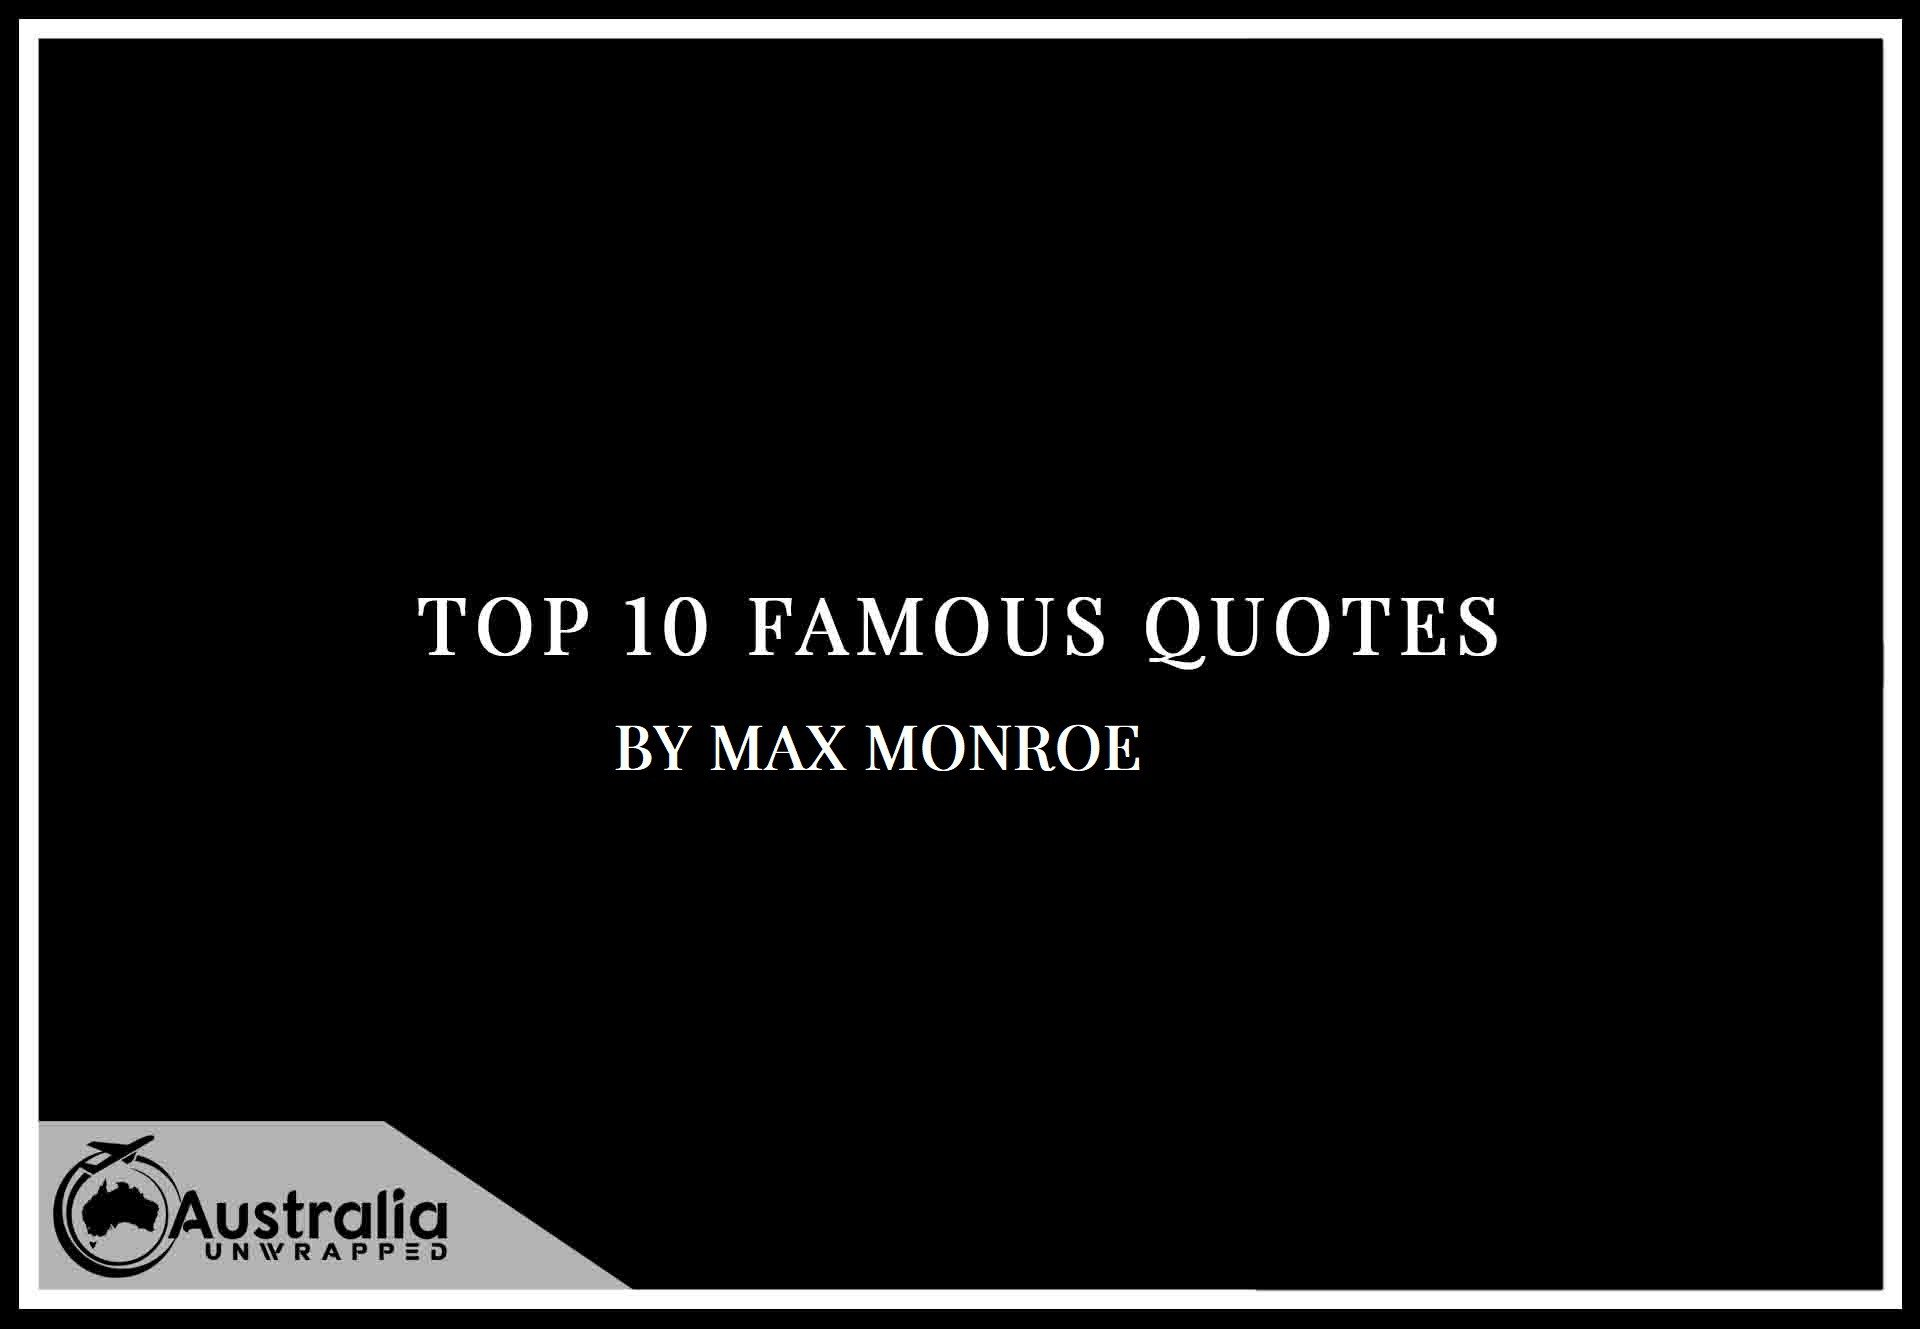 Top 10 Famous Quotes by Author Max Monroe